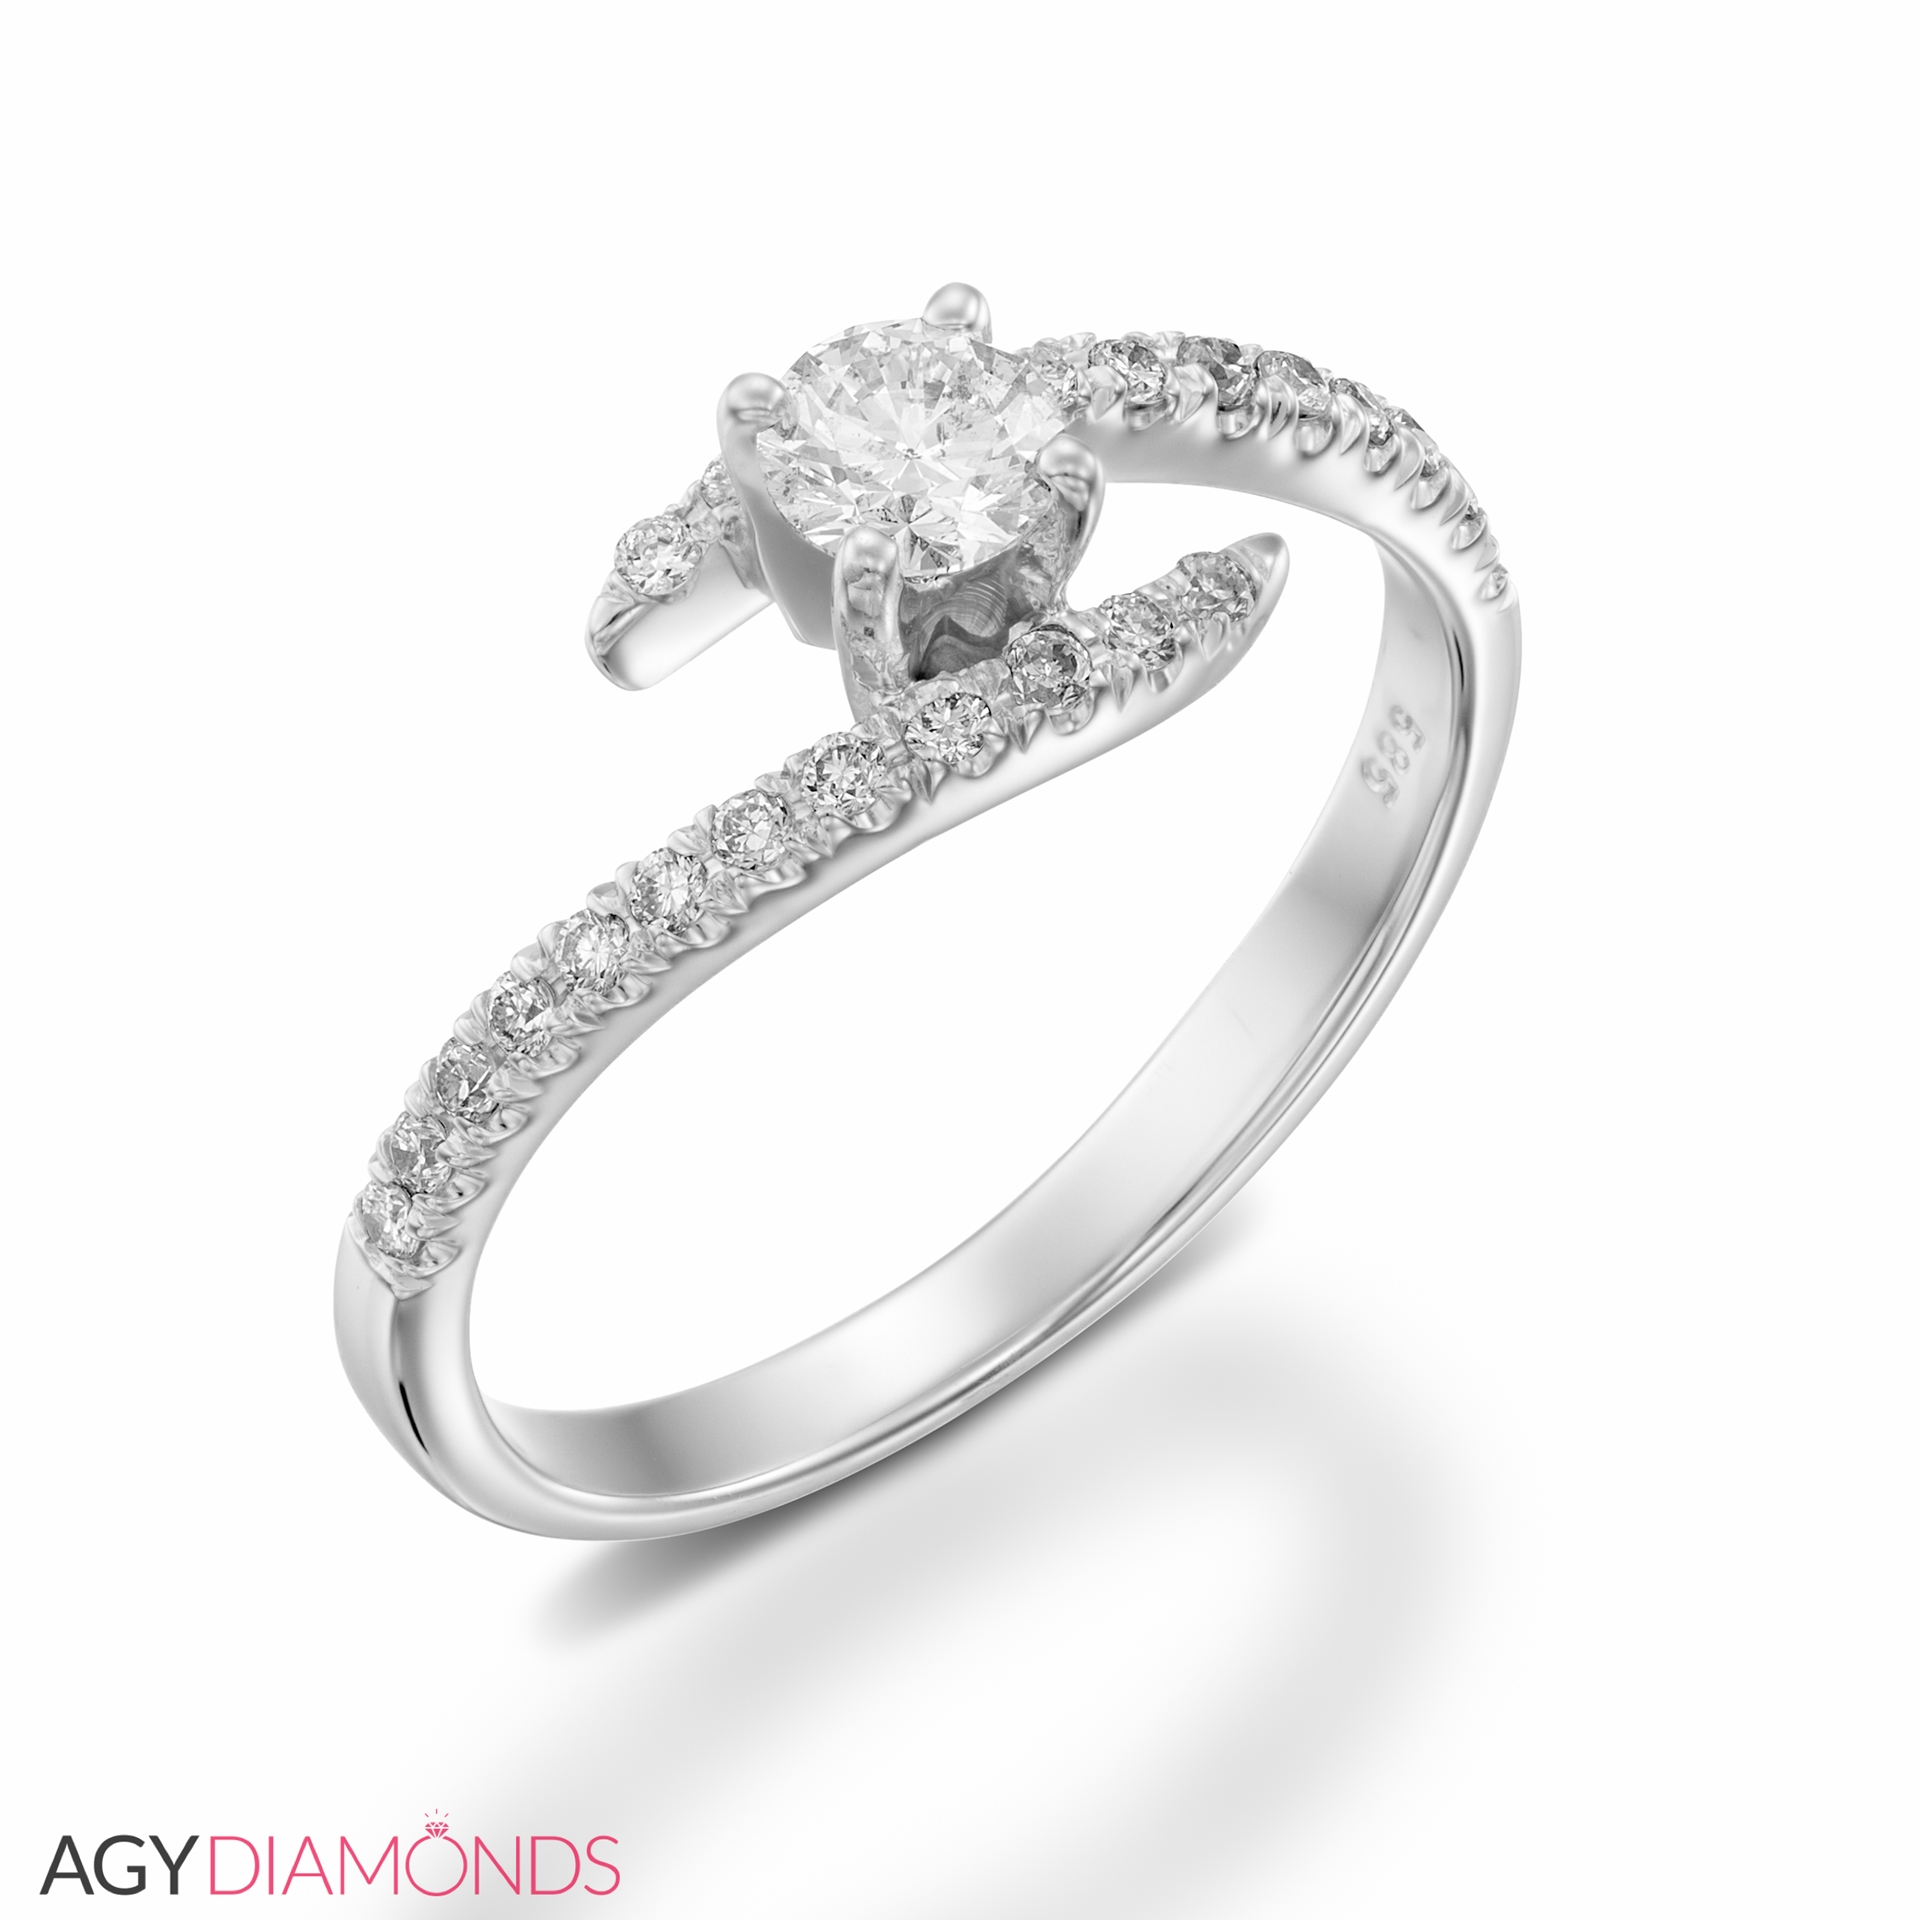 ring allen trends single custom her dream engagement designers a rings wedding james designs fashion photos girl